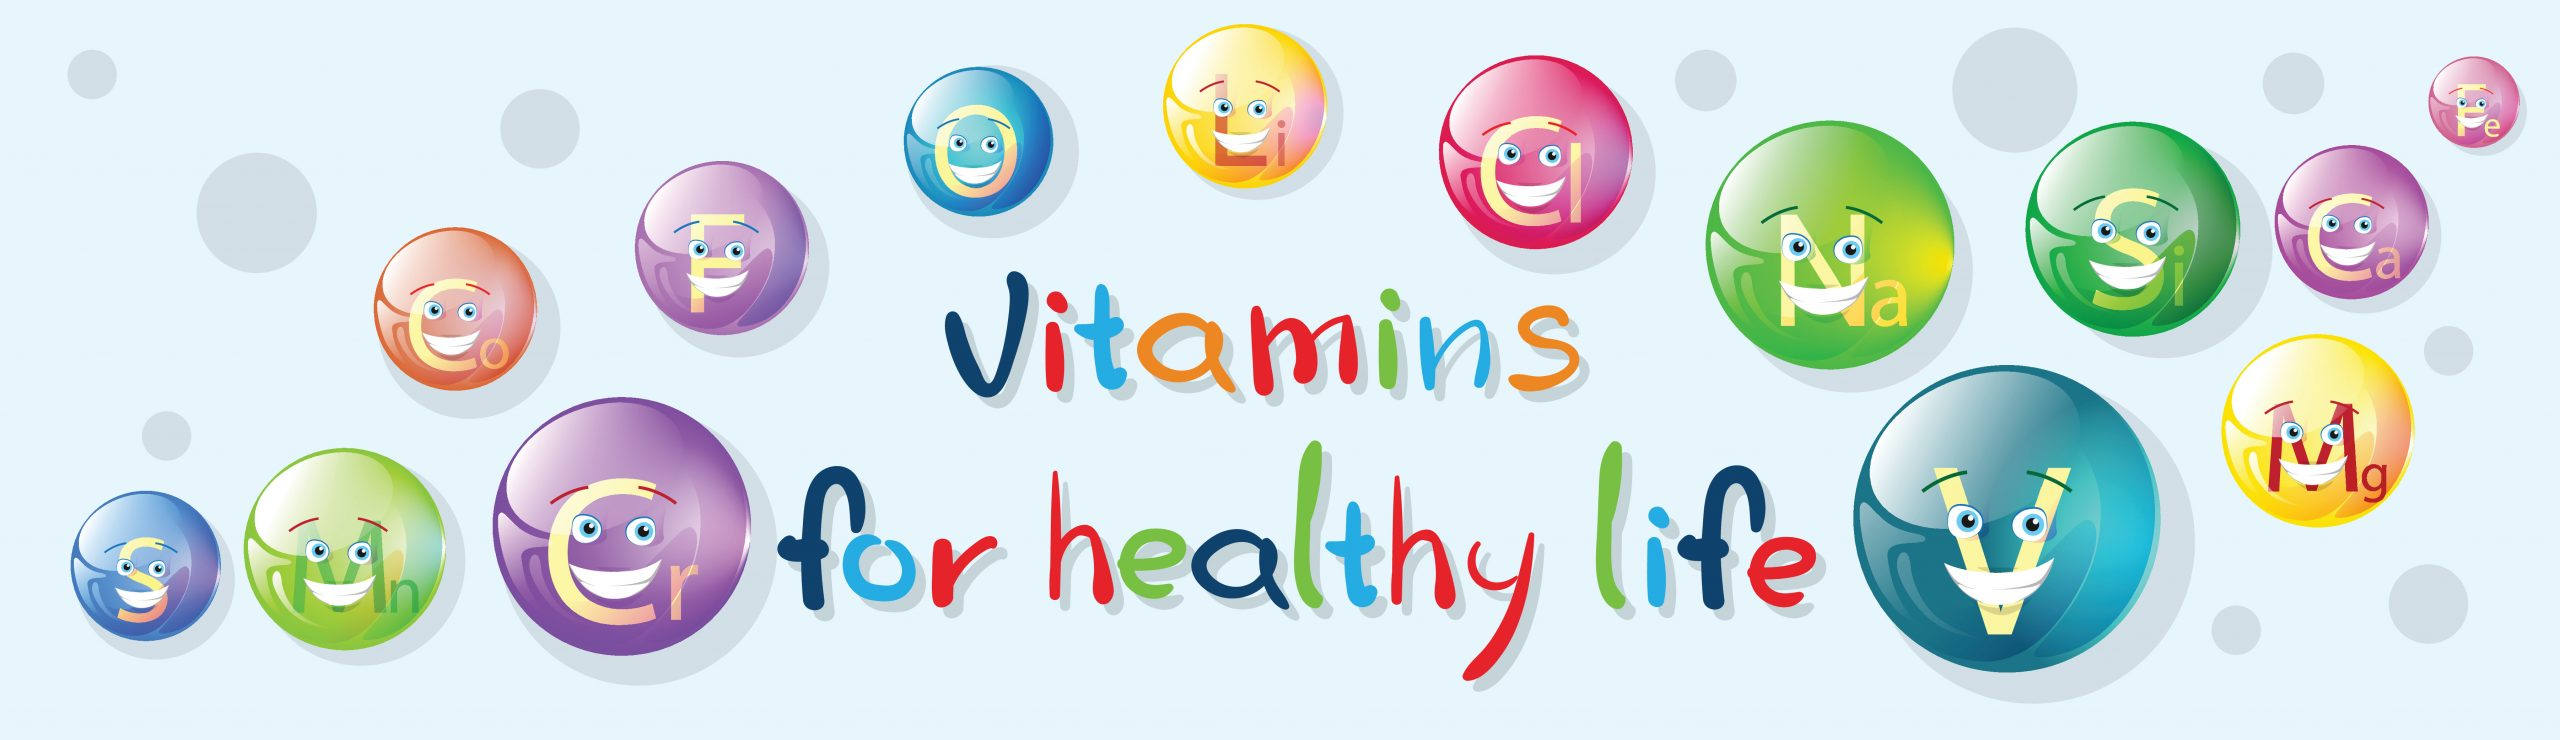 Vitamins Nutrient Minerals Colorful Banner Healthy Life